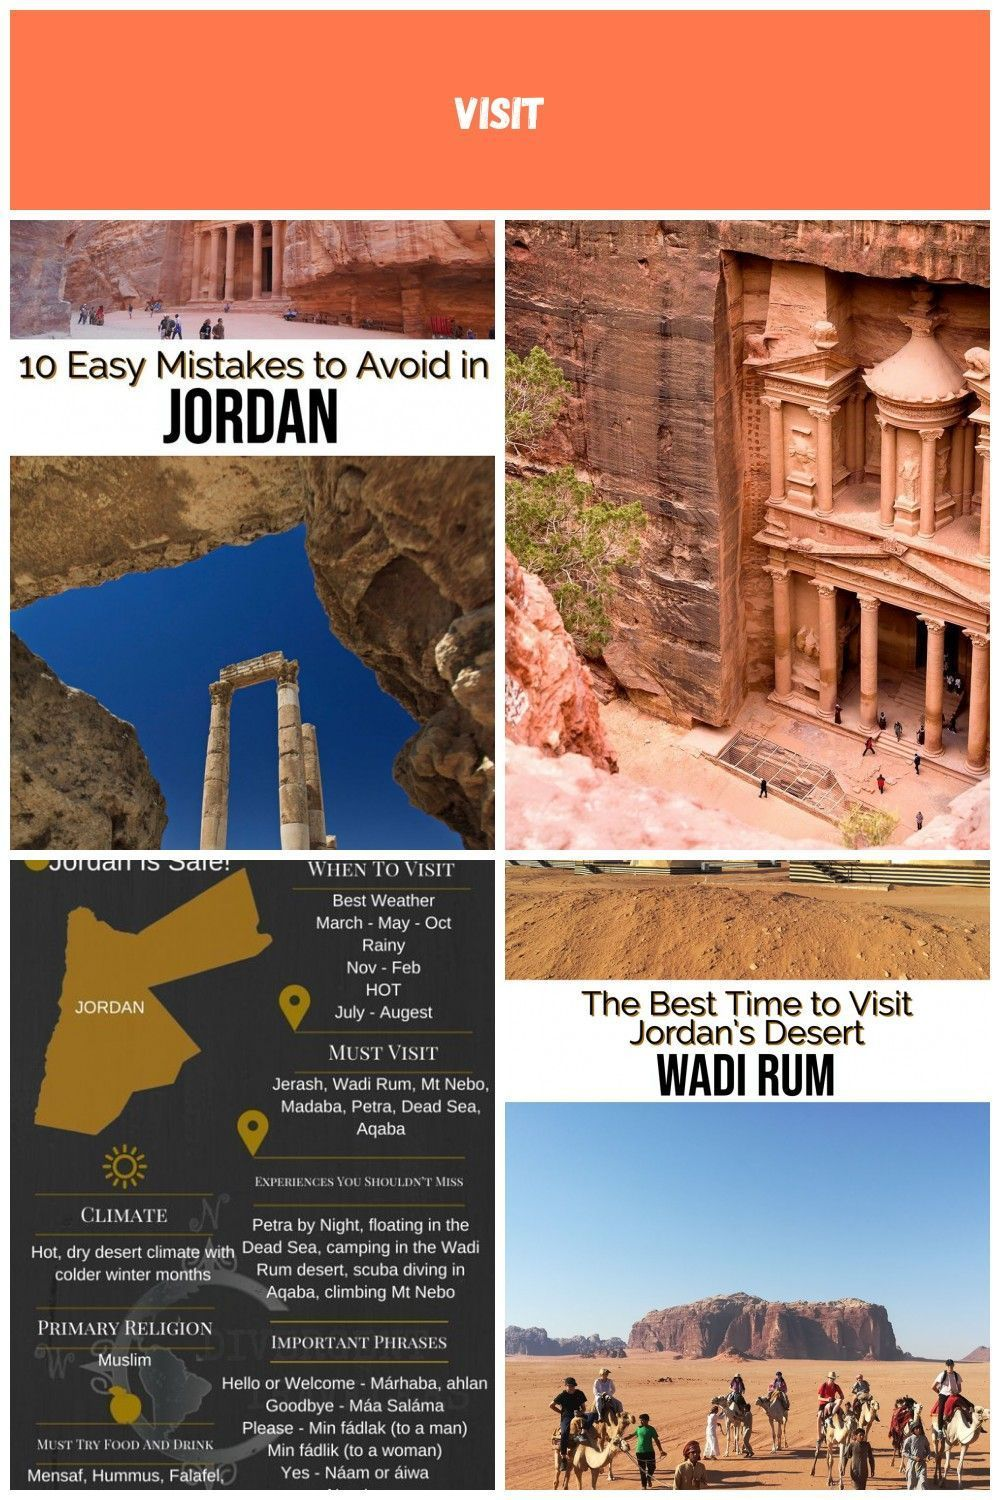 Mistakes to Avoid when planning a Trip to Jordan | Jordan Travel Tips | Middle East Travel Tips | Petra Travel Tips | Petra Jordan Travel #jordan #petra #unesco #travel #traveltips jordans Travel #petrajordan Mistakes to Avoid when planning a Trip to Jordan | Jordan Travel Tips | Middle East Travel Tips | Petra Travel Tips | Petra Jordan Travel #jordan #petra #unesco #travel #traveltips jordans Travel #petrajordan Mistakes to Avoid when planning a Trip to Jordan | Jordan Travel Tips | Middle Eas #traveltojordan